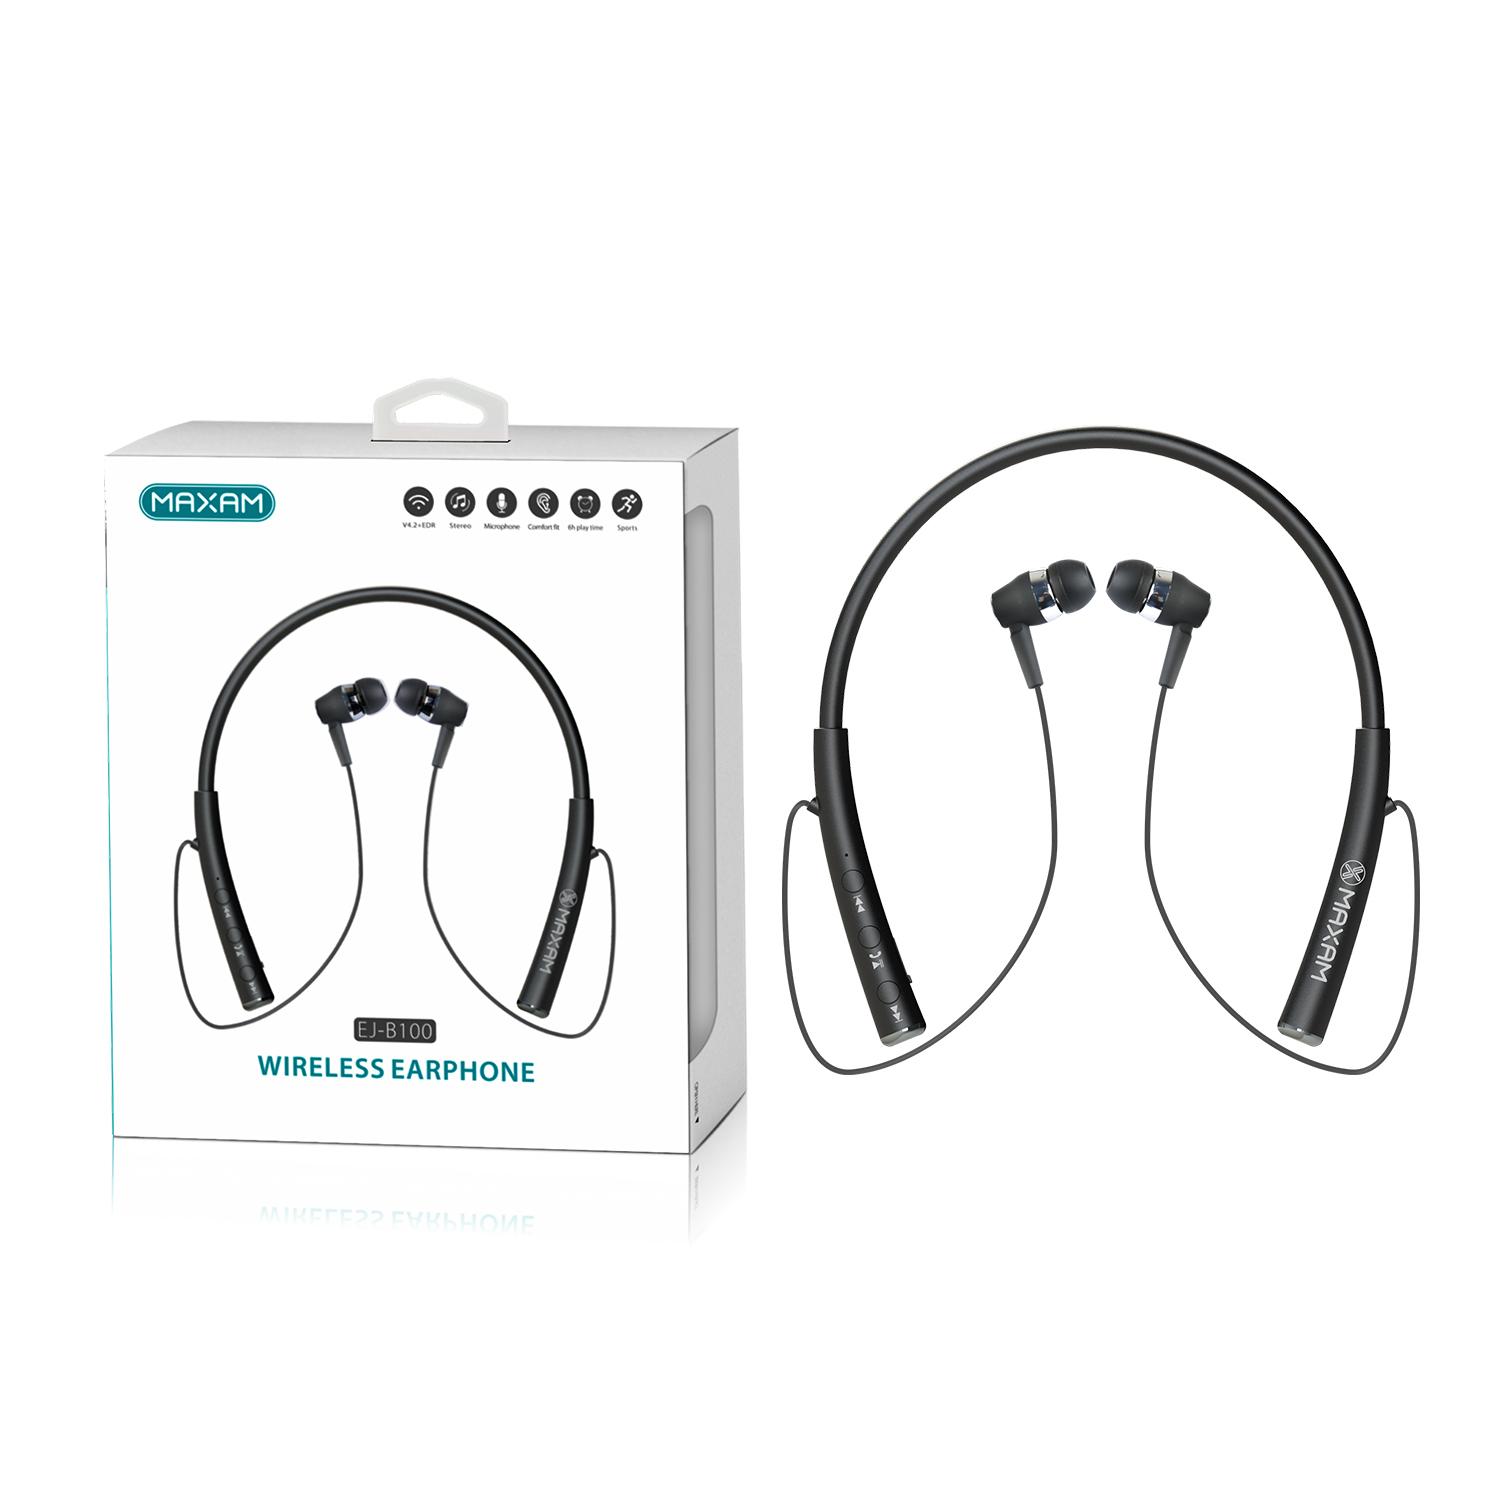 EJ-B100Black Auricolare Wireless